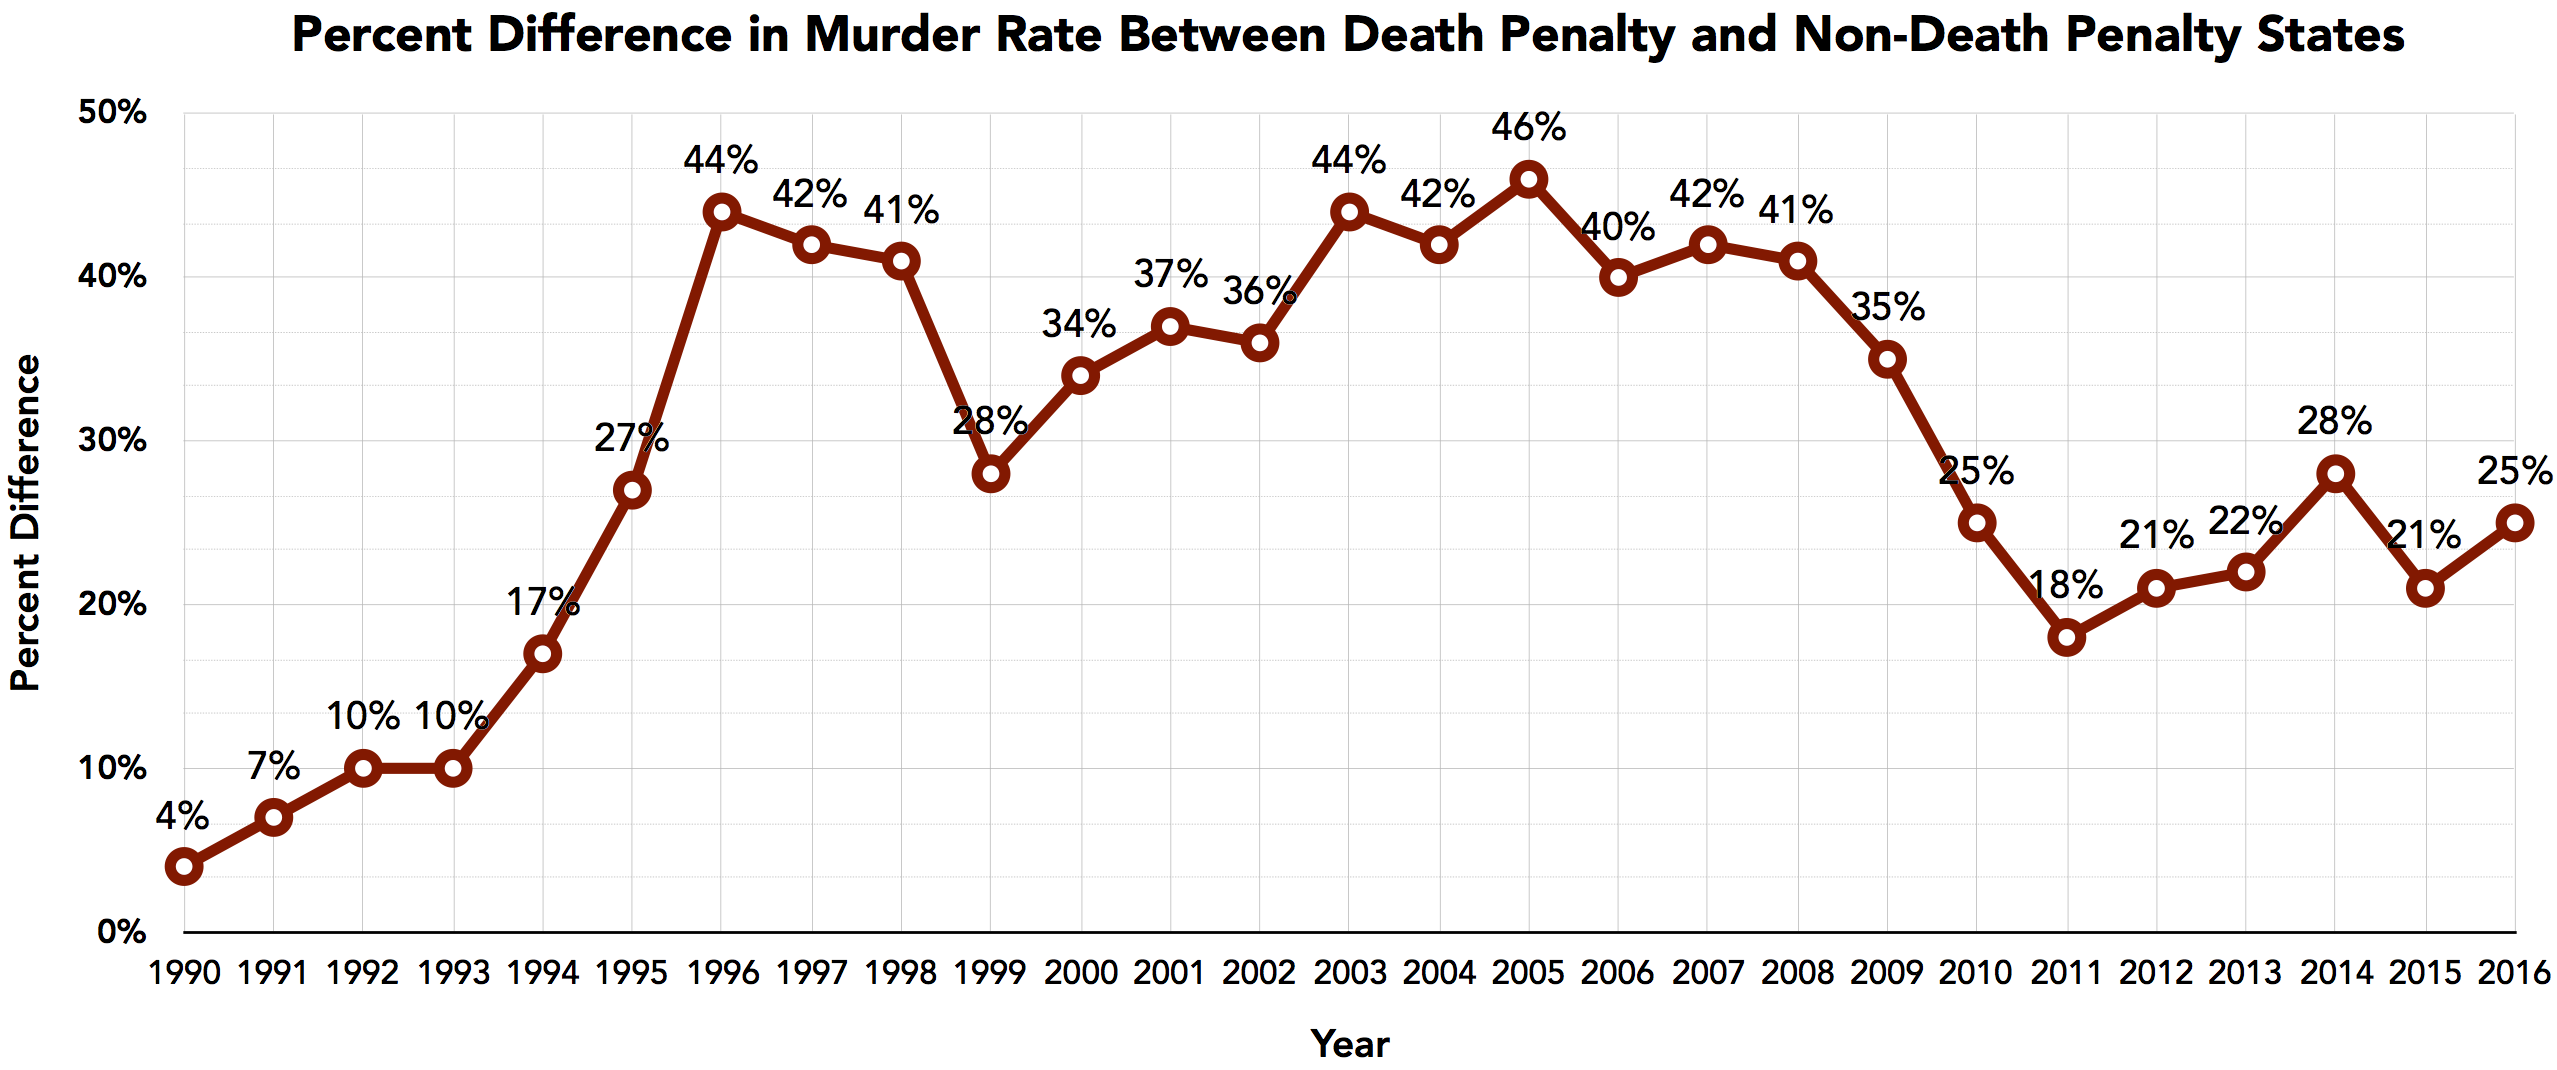 death penalty as a deterrence Does capital punishment deter murder a brief look at the evidence by john lamperti the question of the death penalty and deterrence of homicide has something.